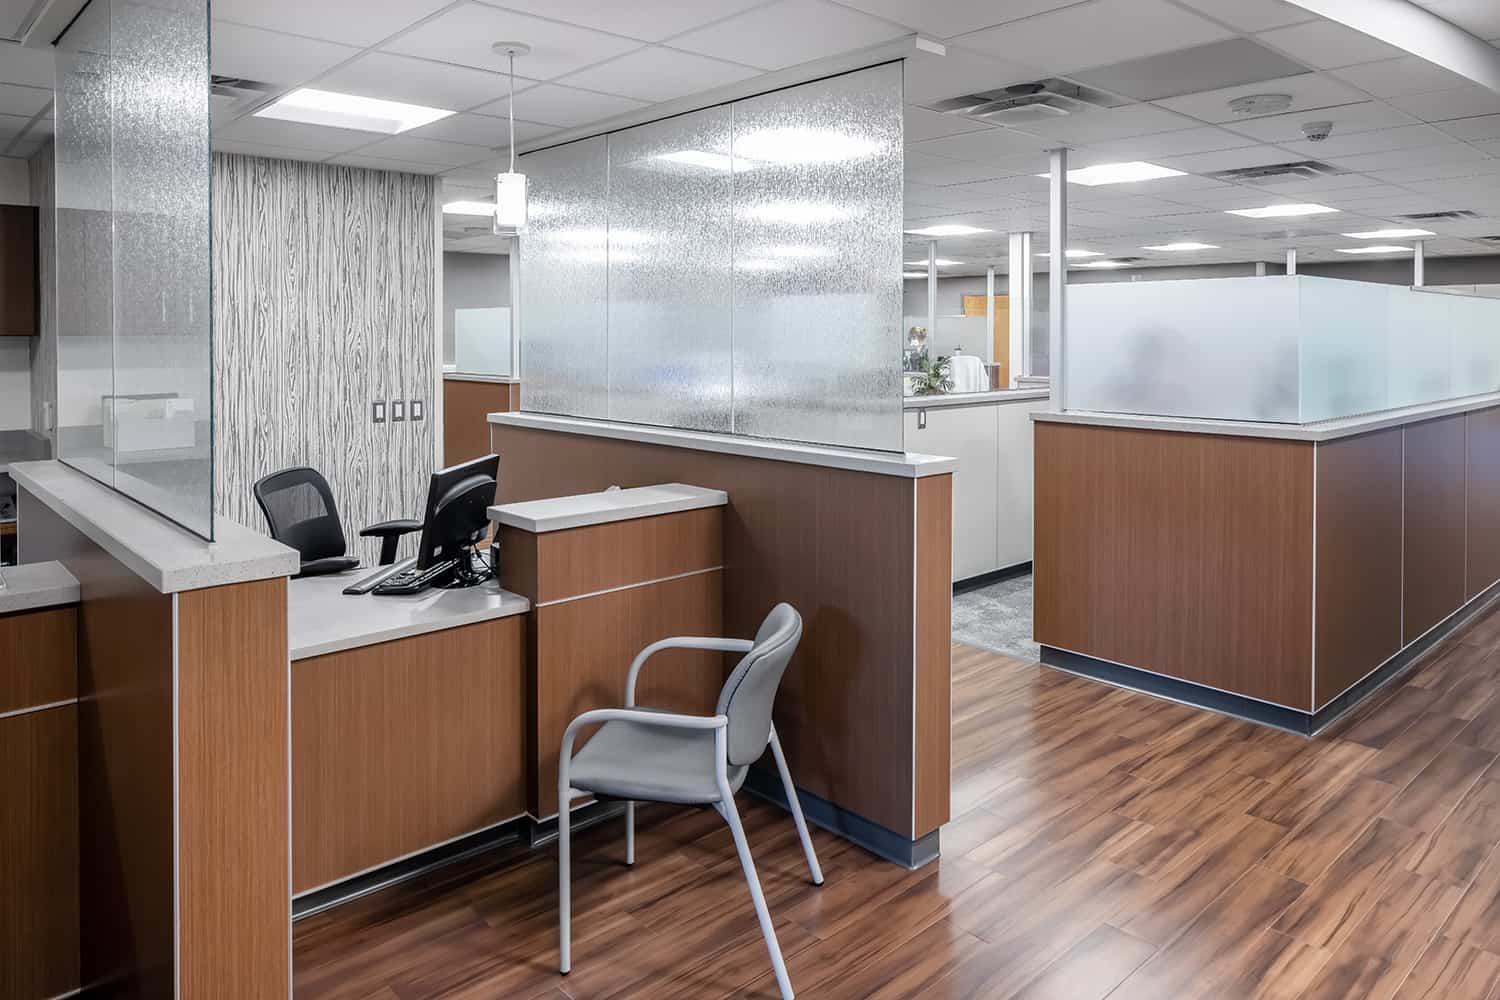 A check-in desk at a nurse station with privacy shields and warm wood tones.